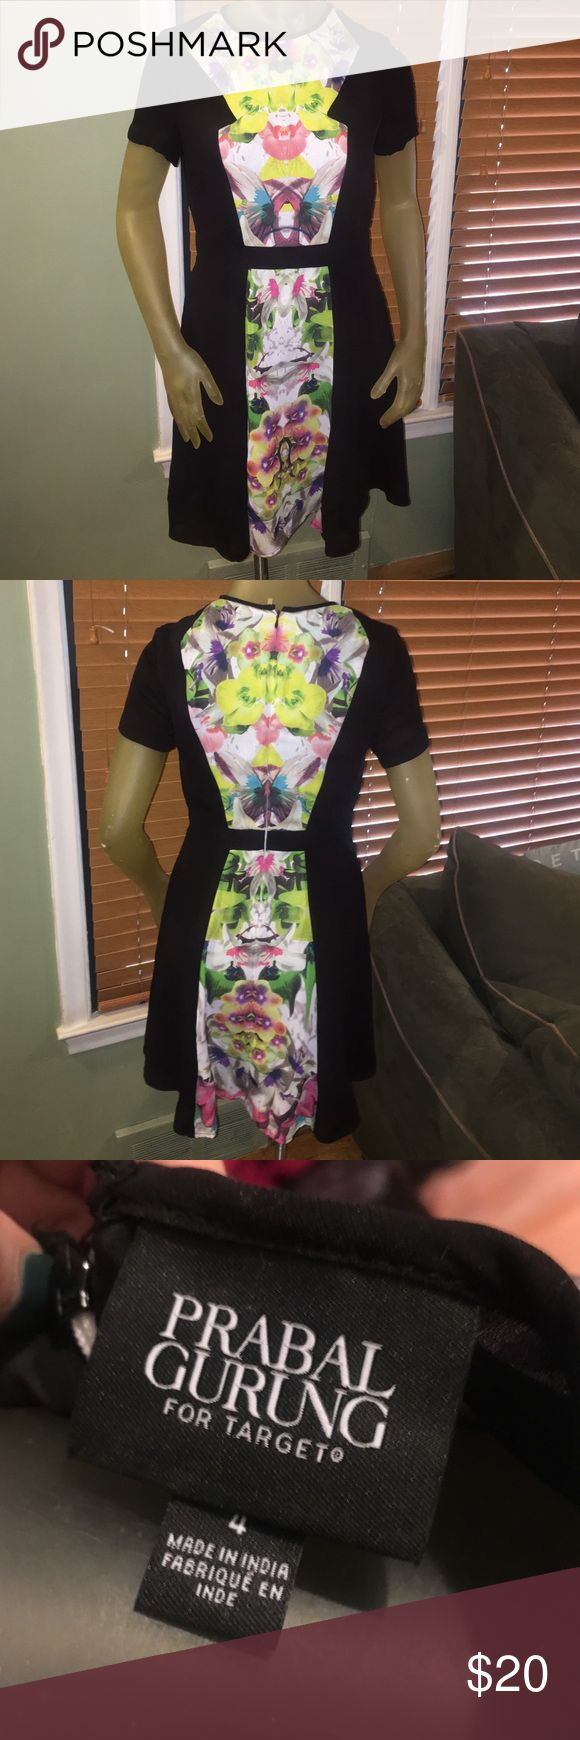 Prabel Gurung for Target cute dress Really cute dress with floral print front and back. Perfect for a bridal shower or wedding. Sits a little above knee. Zipper in back Prabal Gurung for Target Dresses Mini